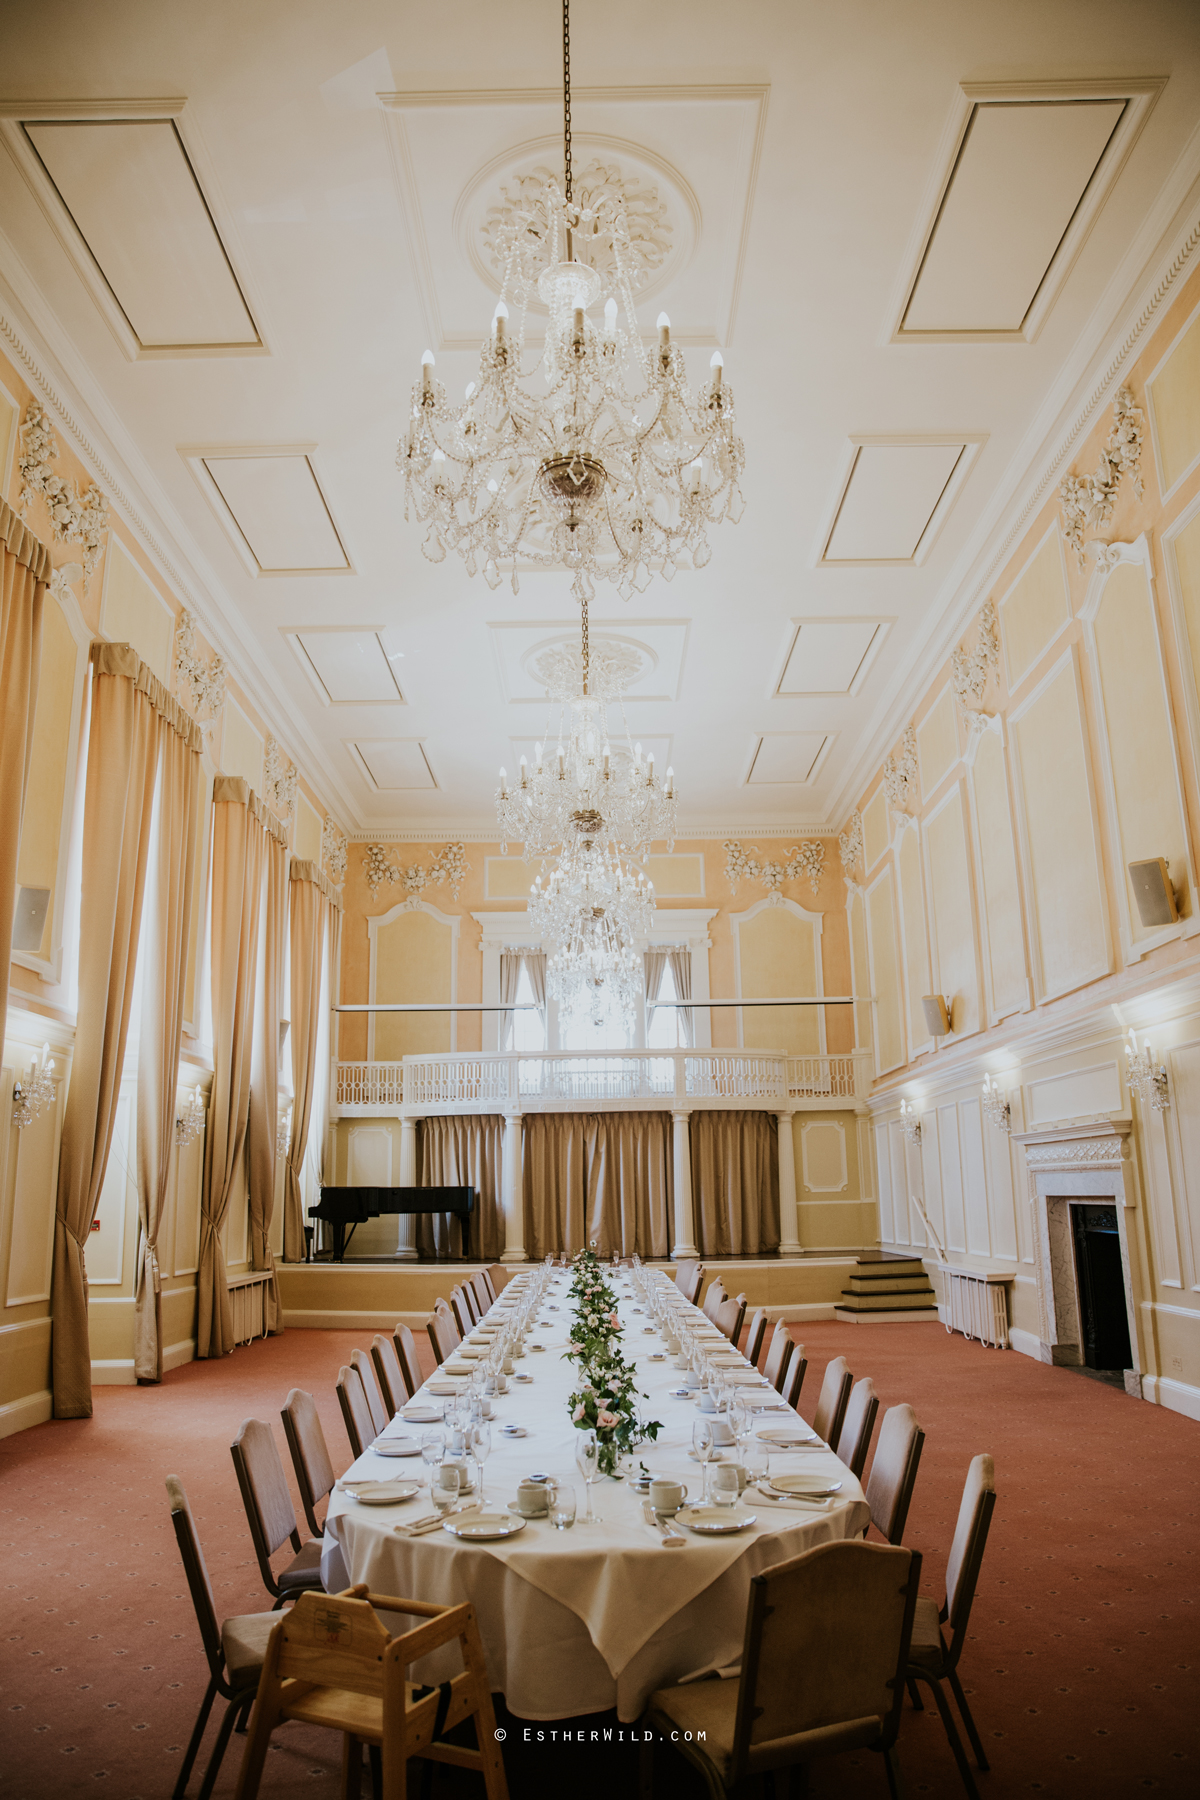 Assembly_House_Norwich_Norfolk_Esther_Wild_Photographer_IMG_0125.jpg